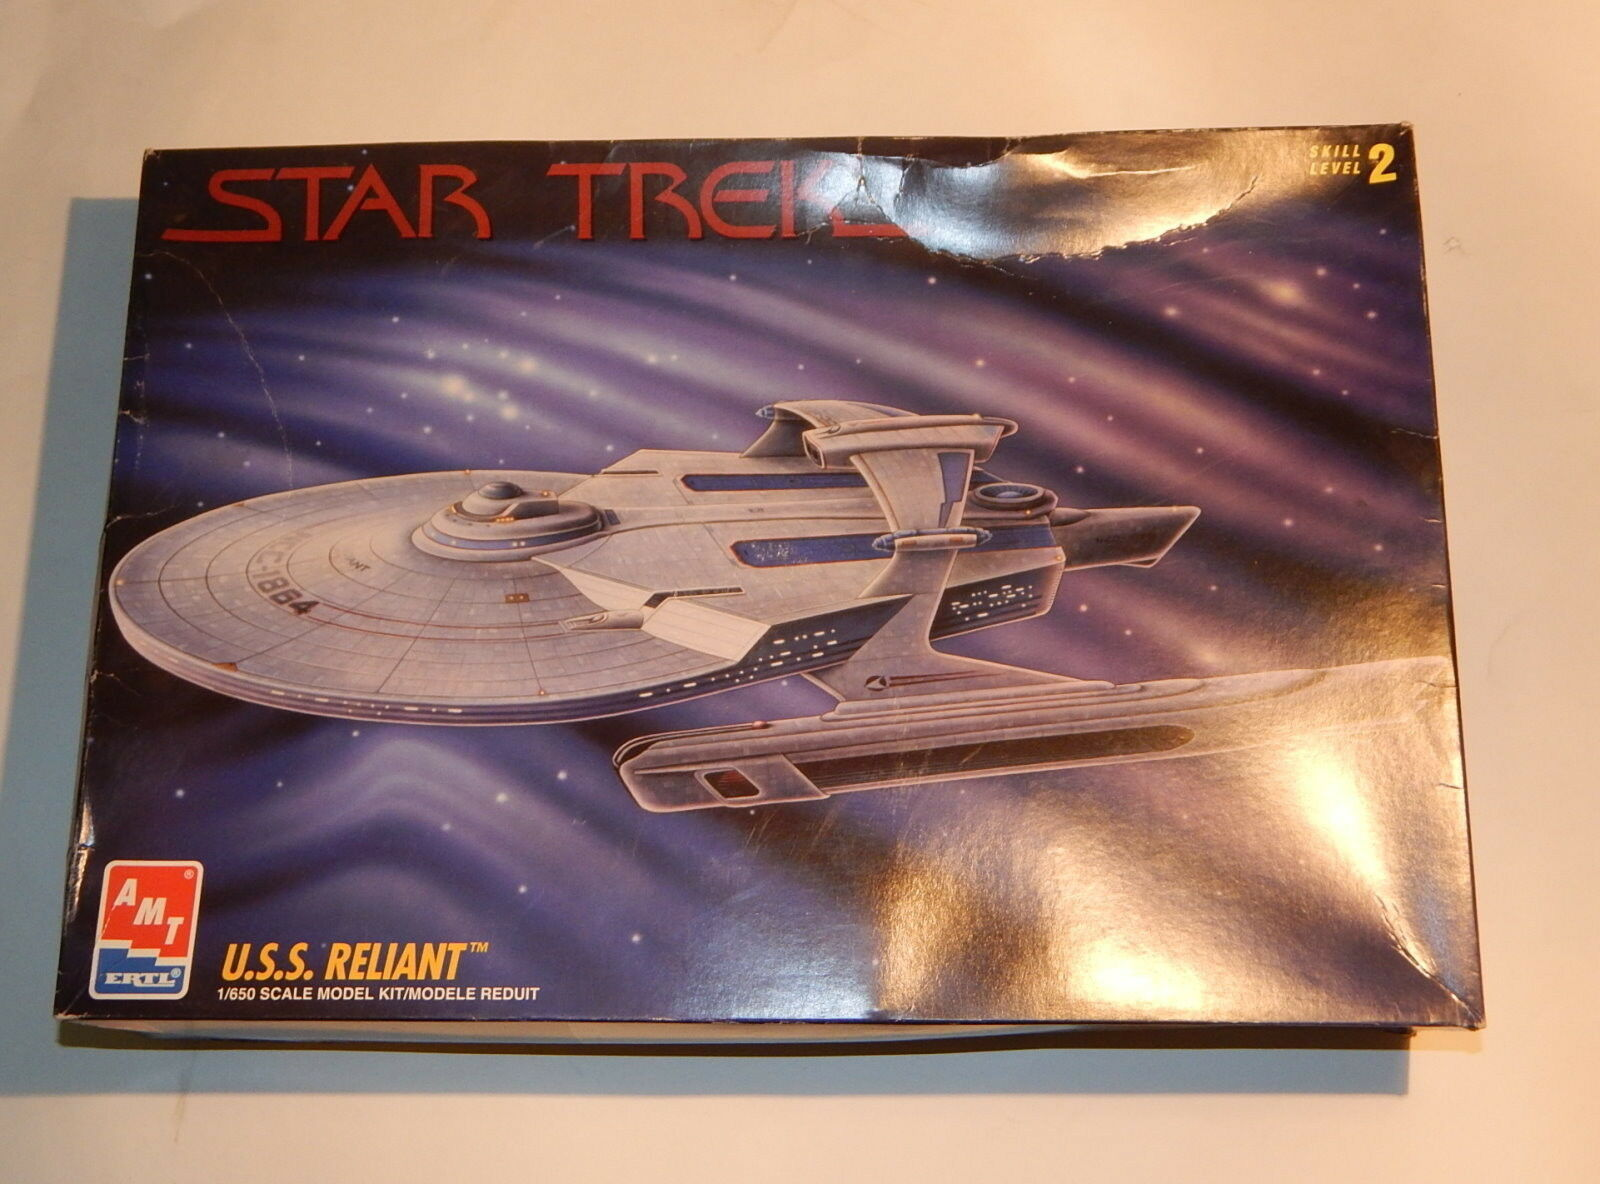 NIB AMT ERTL Star Trek USS Reliant 1 650 Scale Model Kit  1995